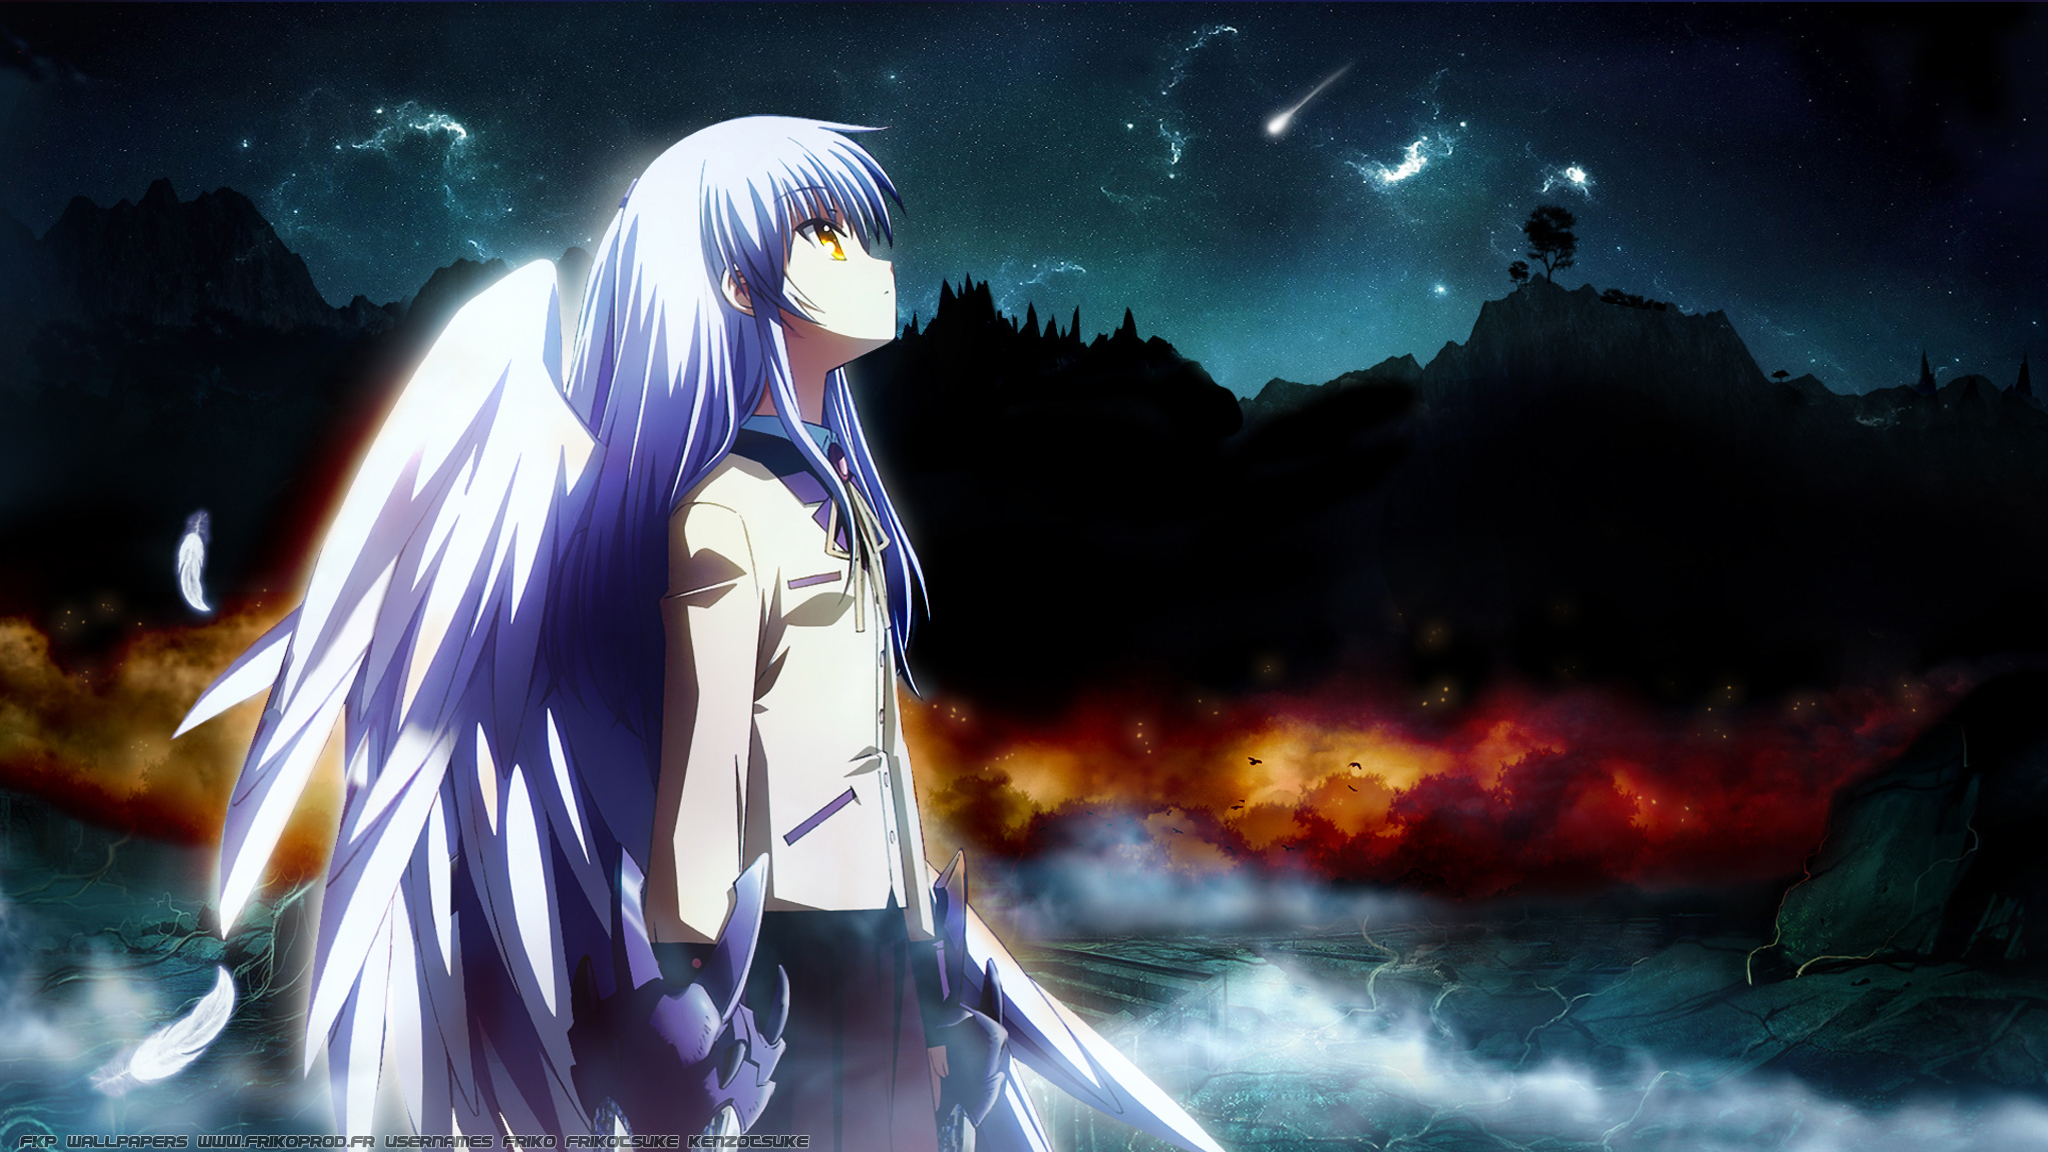 Angel Beats! Wallpaper: <-Lost in thought-> - Minitokyo